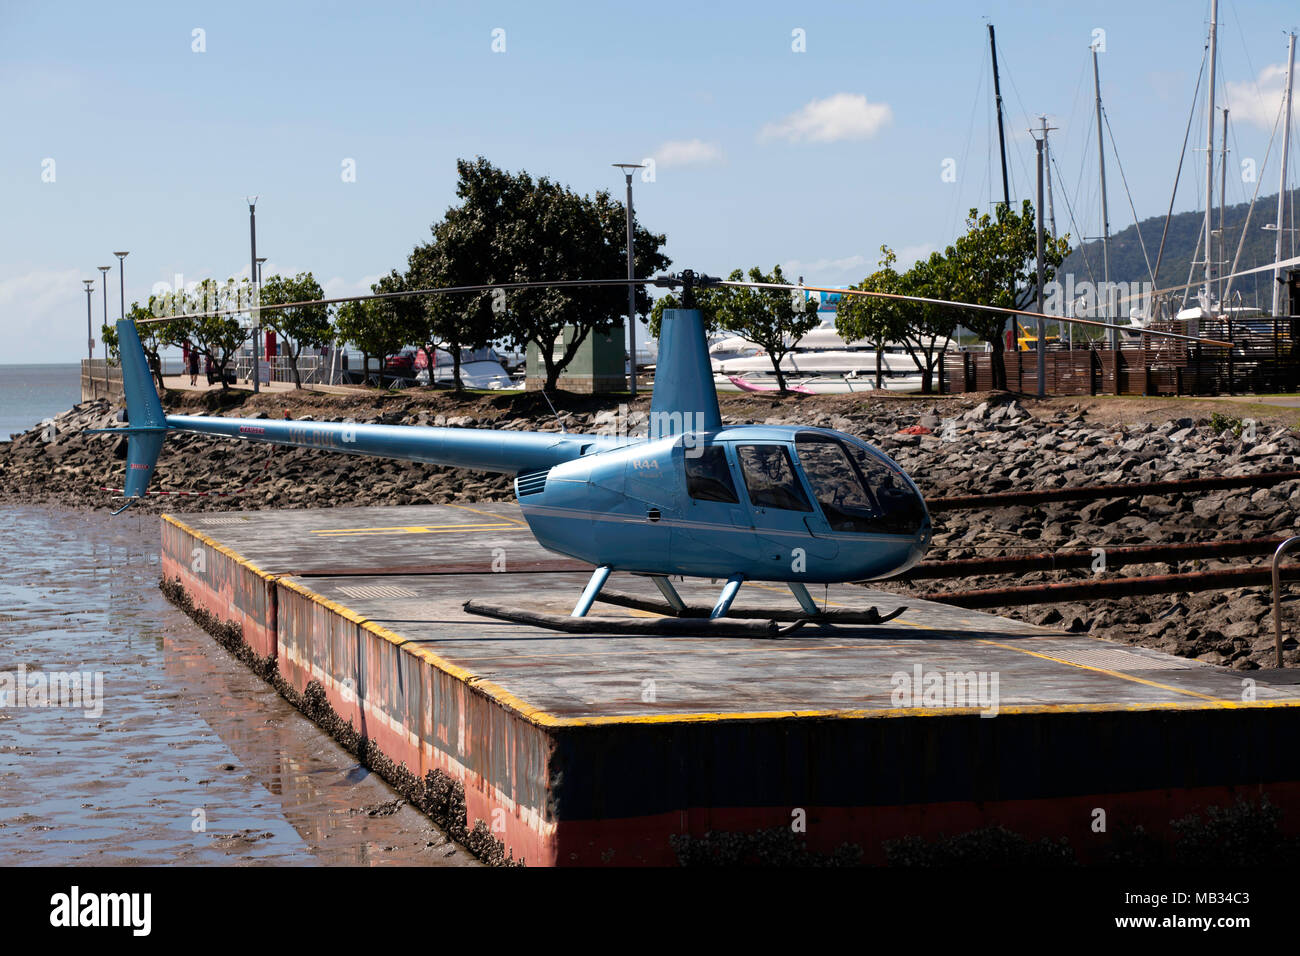 An R44 Raven-1 Helecopter, operated by gbr helicopters, Cairns, Queensland, Australia - Stock Image